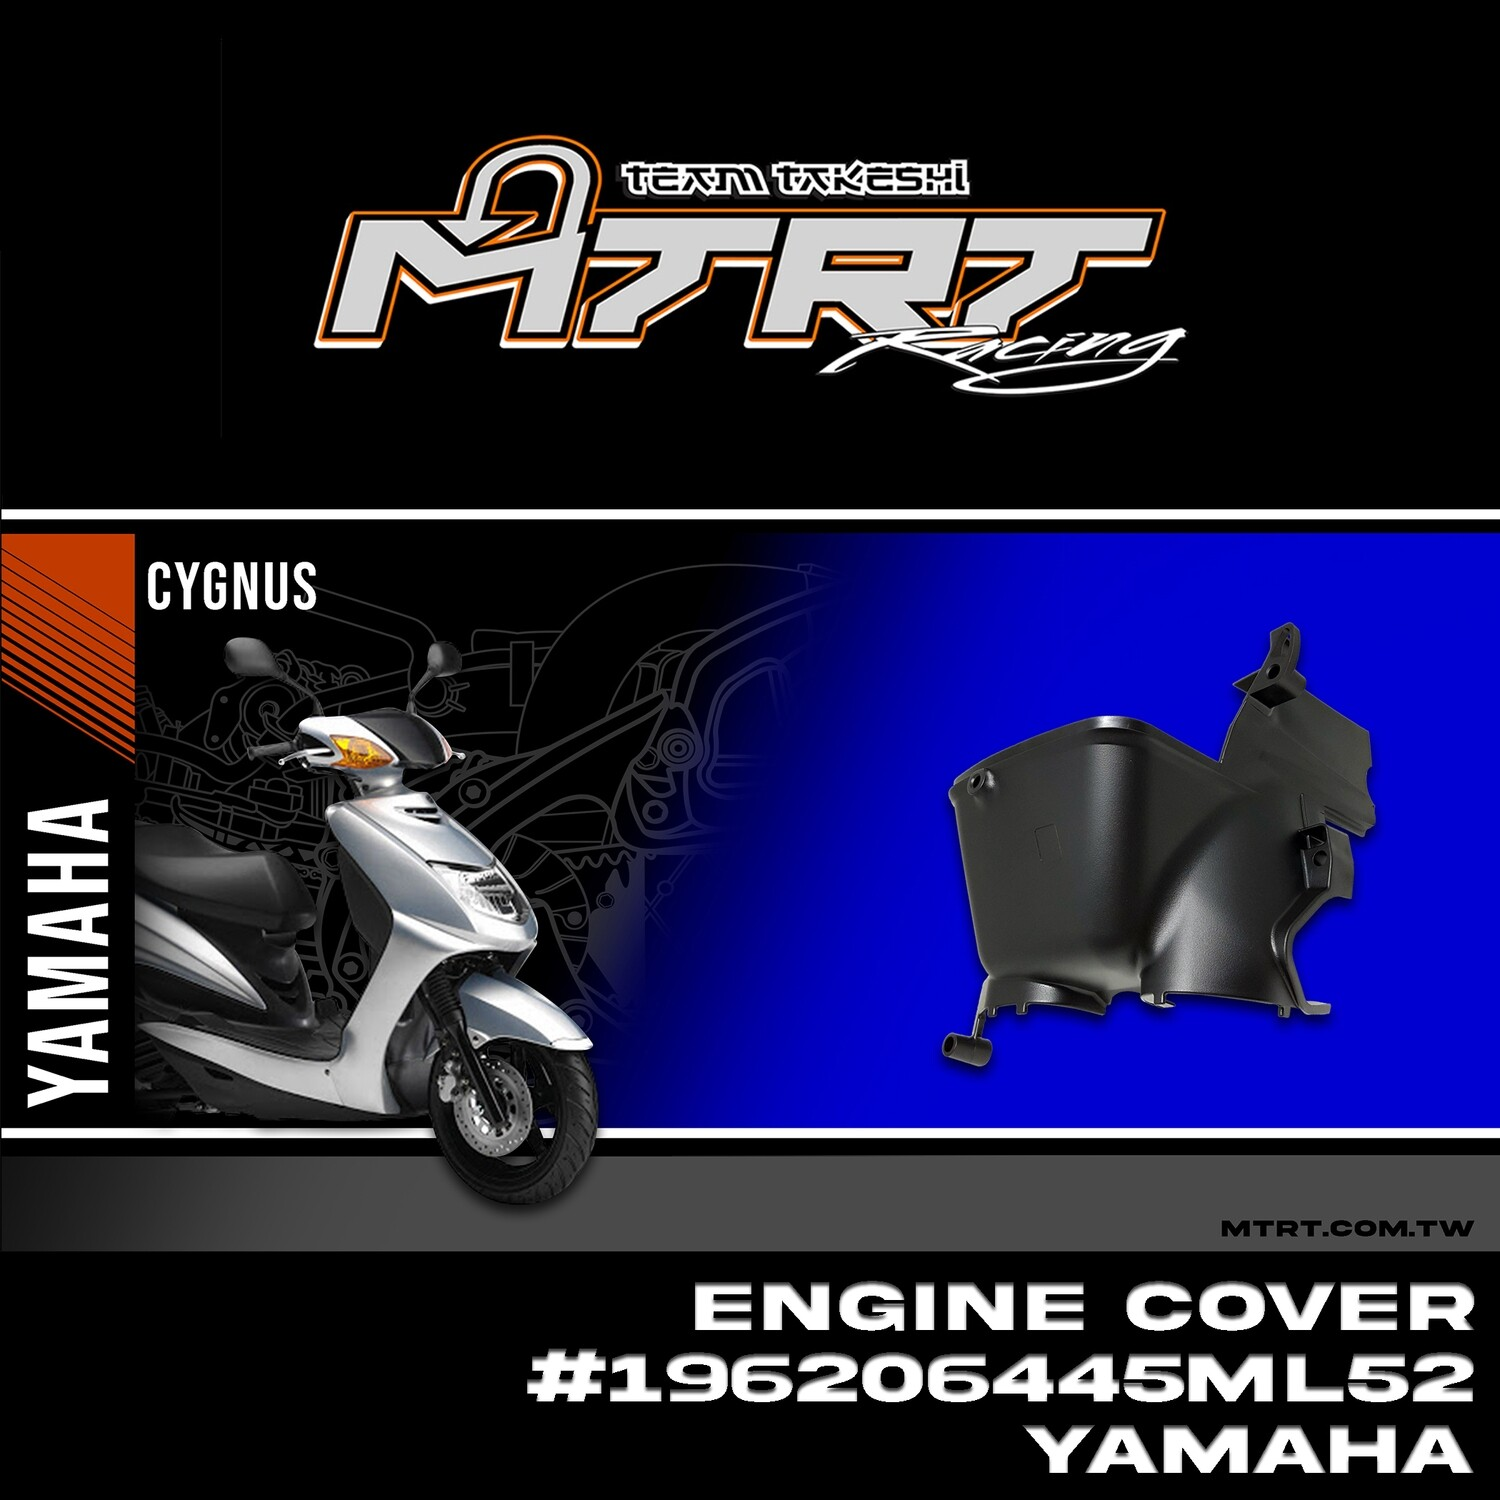 ENGINE COVER YAMAHA #196206445ML52